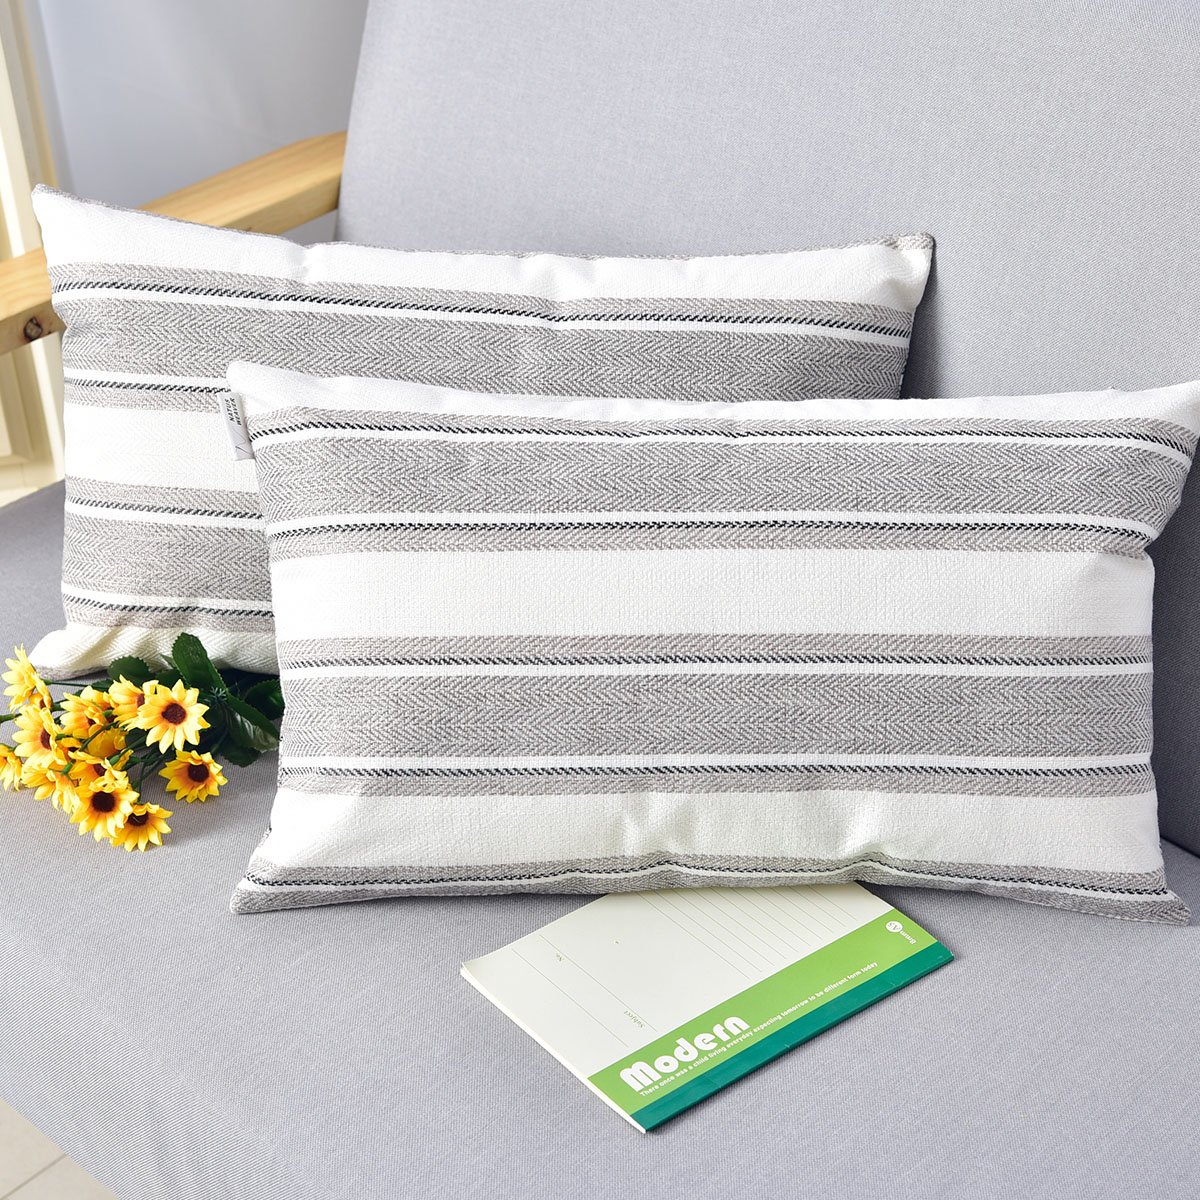 2 Pieces NWLPCC NATUS WEAVER Outlet Decorative 18 X 18 Inch Faux Linen Cloth Pillow Cover Cushion Case for Bench,White